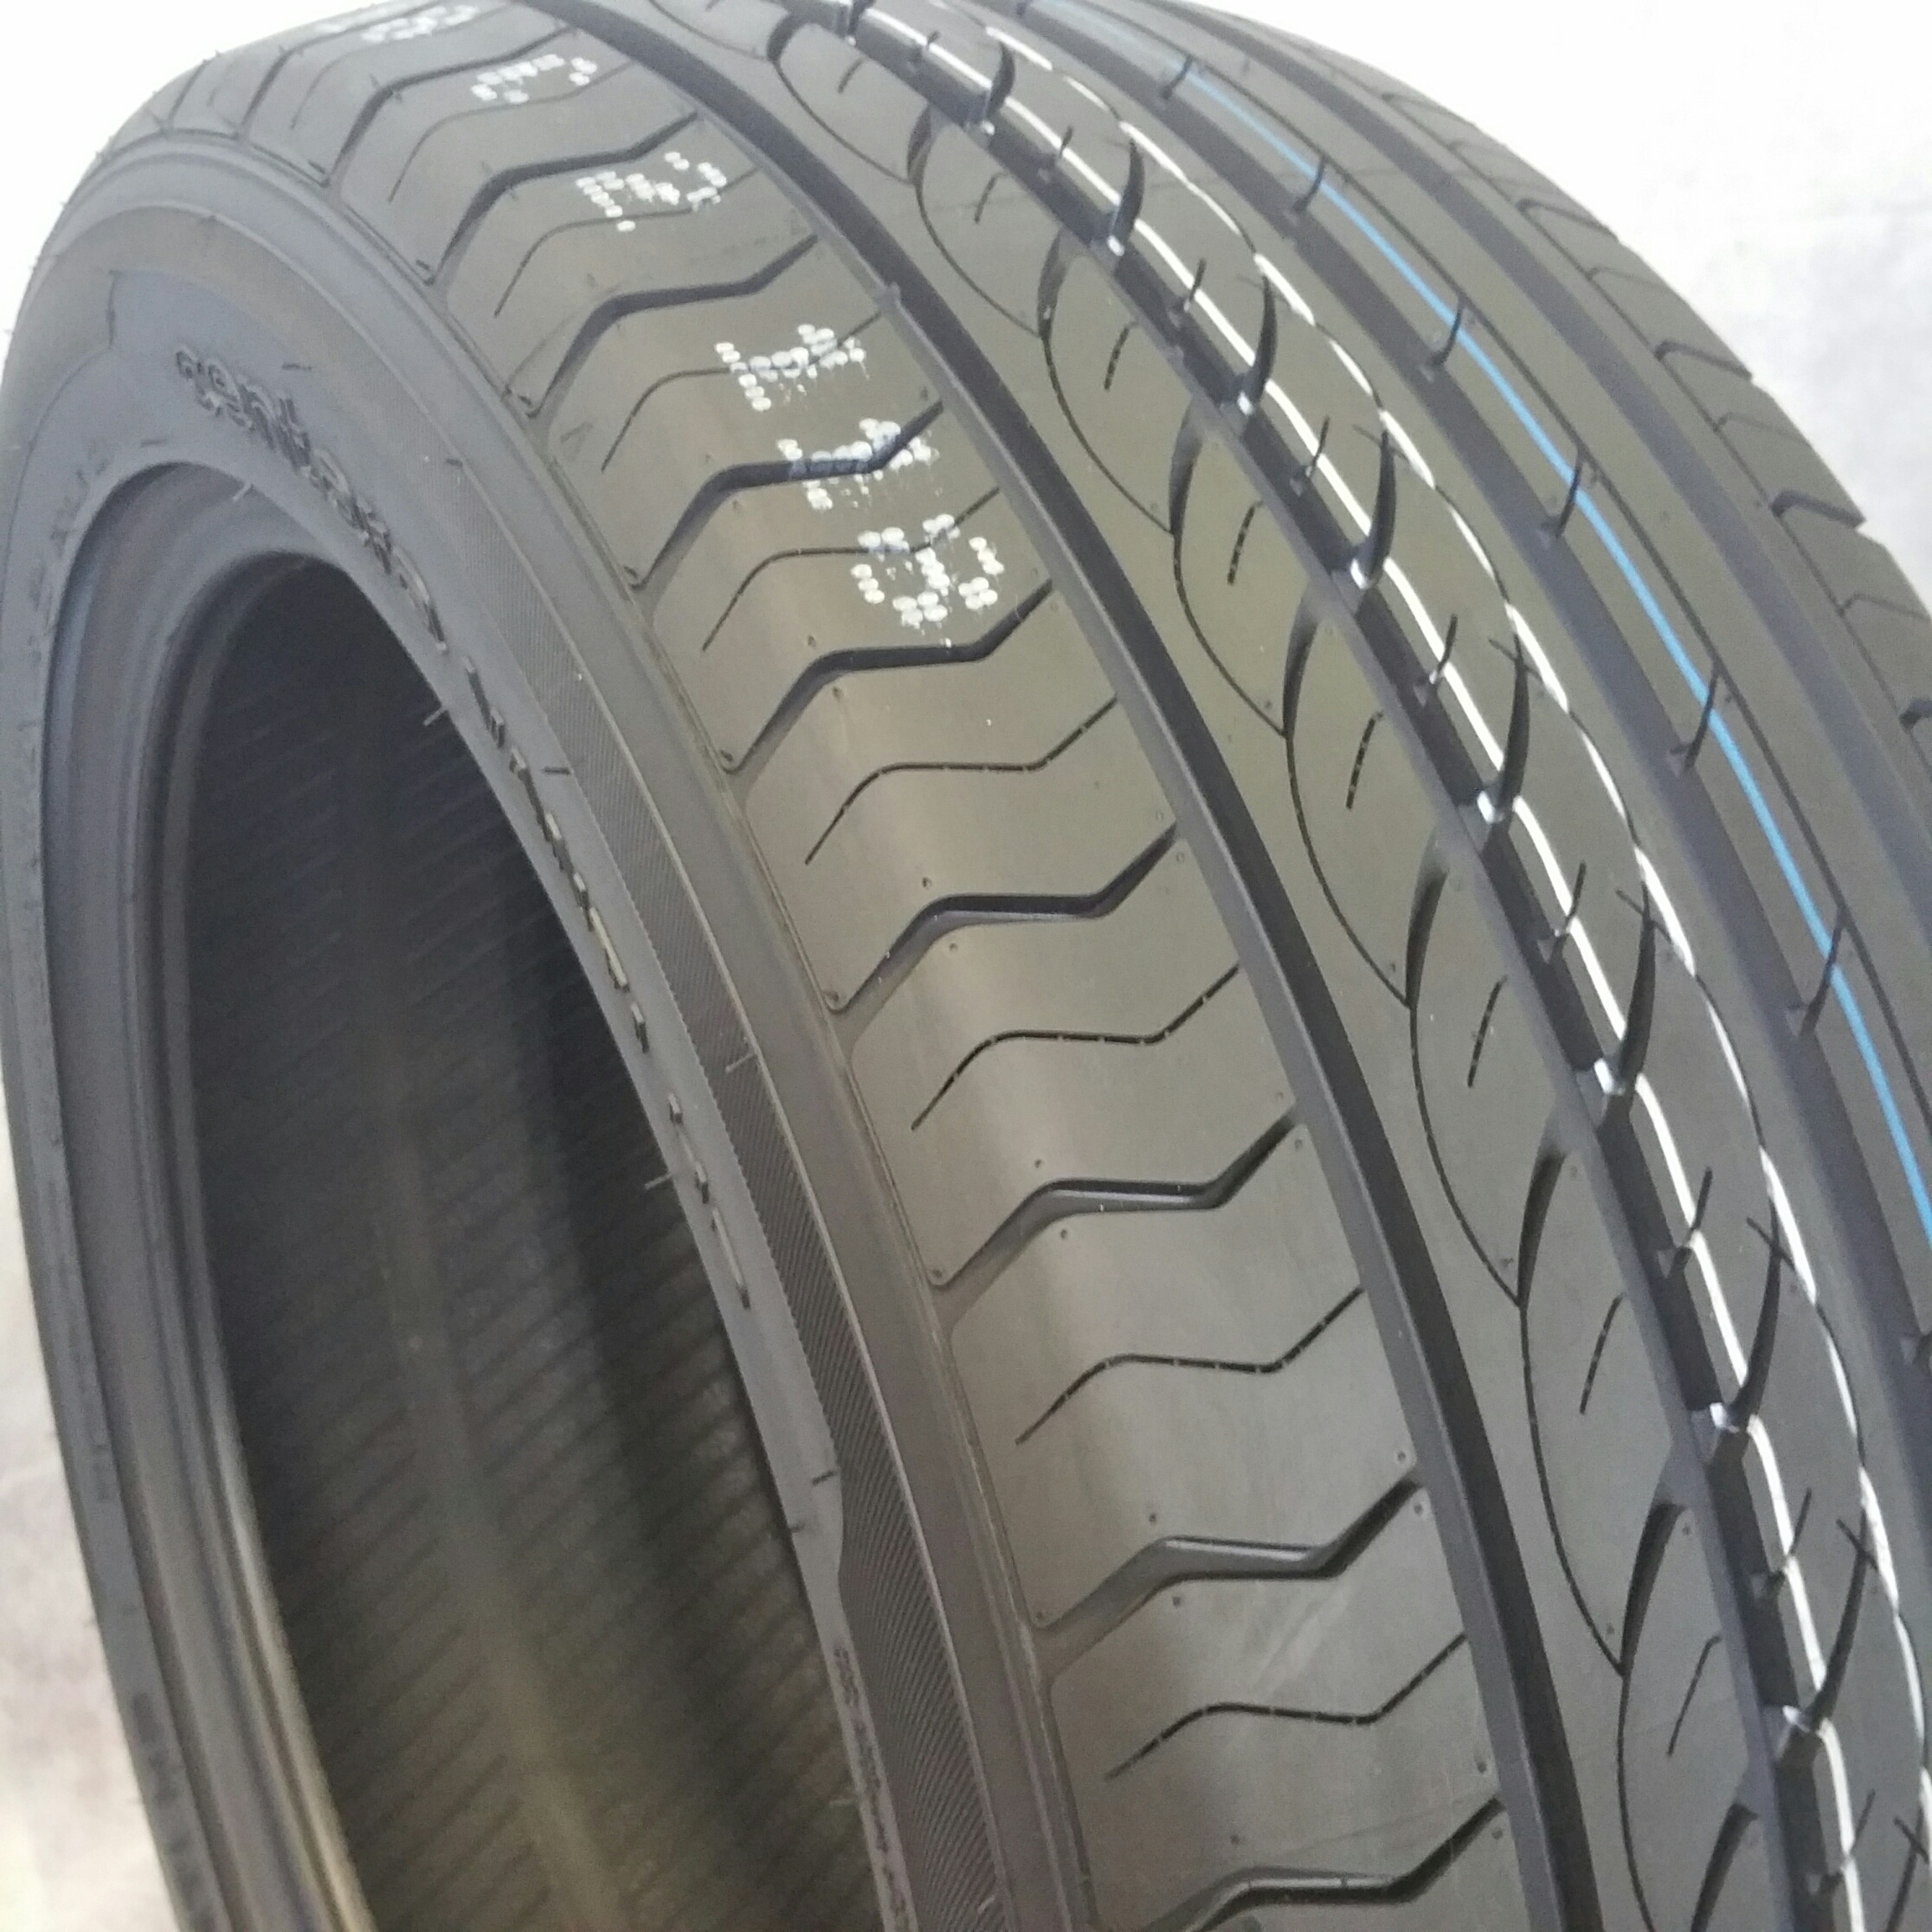 Trucktiresinc.com Recommends 11R22.5 and 11R24.5 16 Ply ...